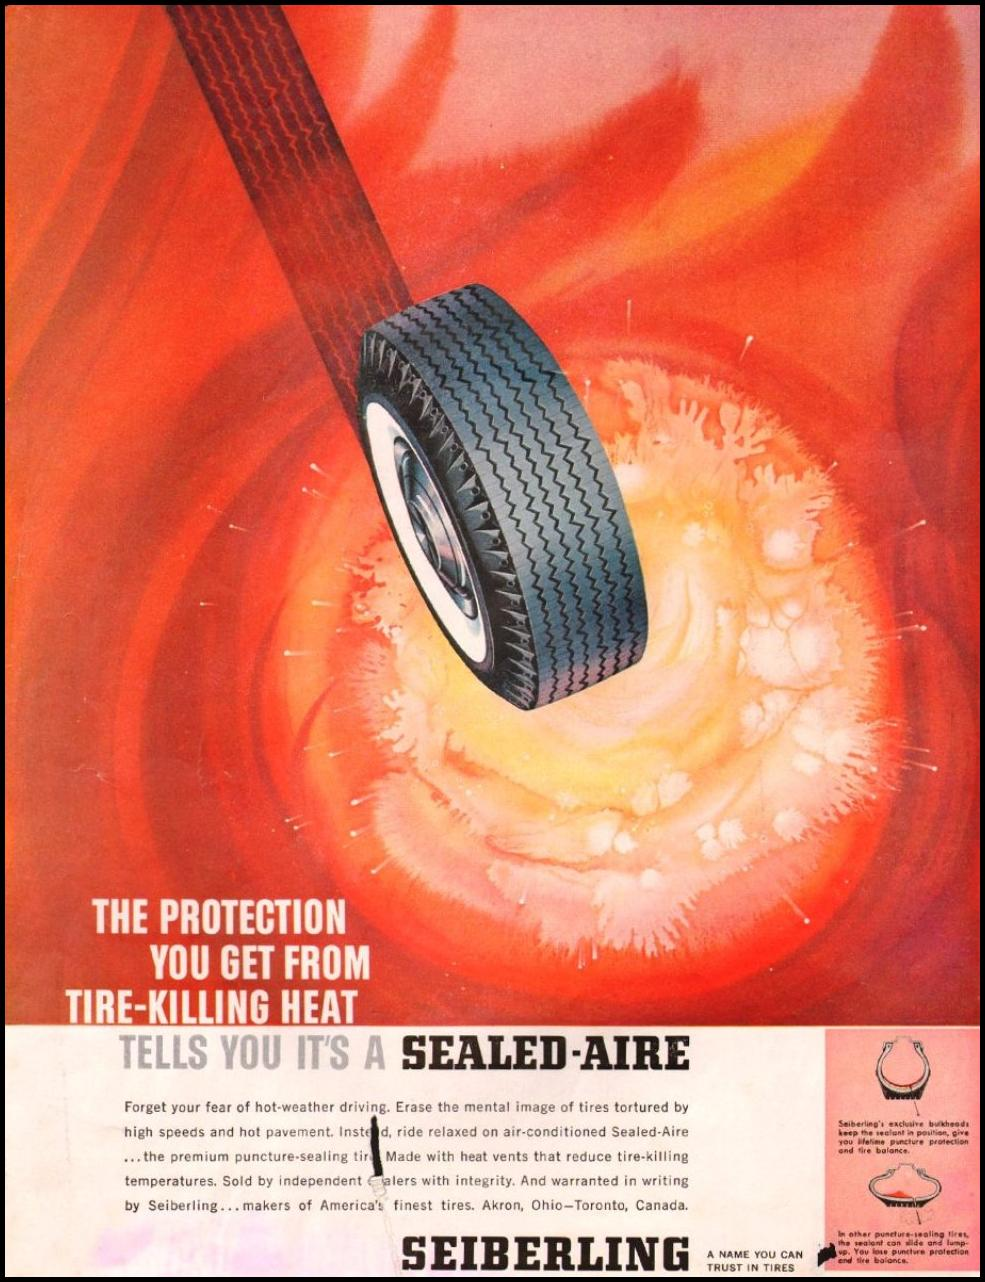 SEIBERLING TIRES SATURDAY EVENING POST 06/04/1960 INSIDE BACK